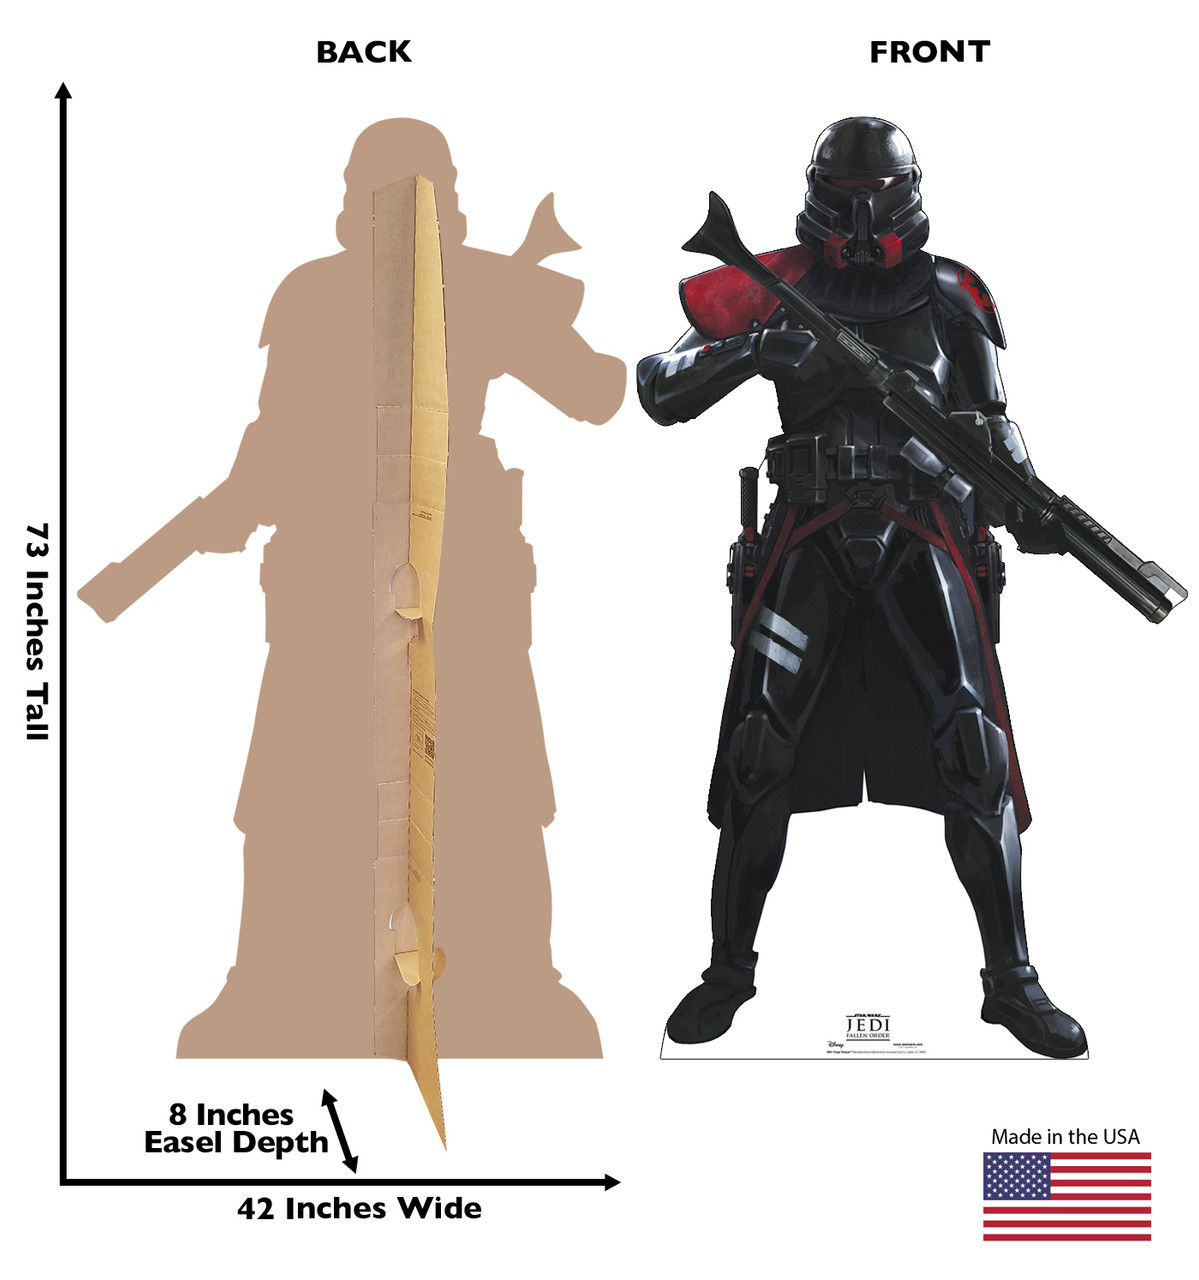 Life-size cardboard standee of Purge Trooper from Jedi Fallen Order with back and front dimensions.